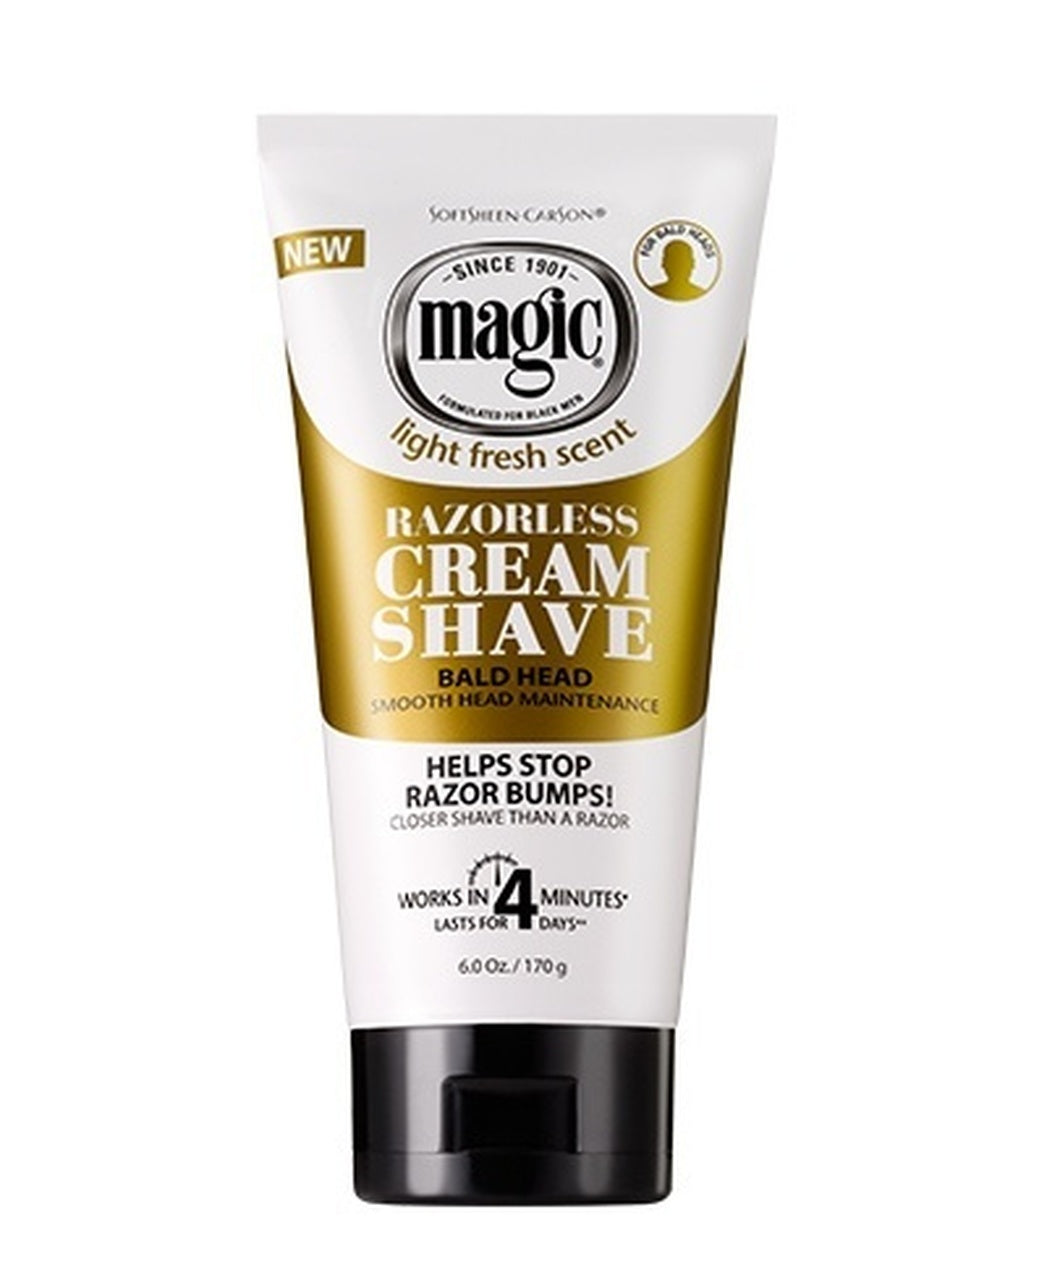 Magic Razorless Cream Shave Bald Head